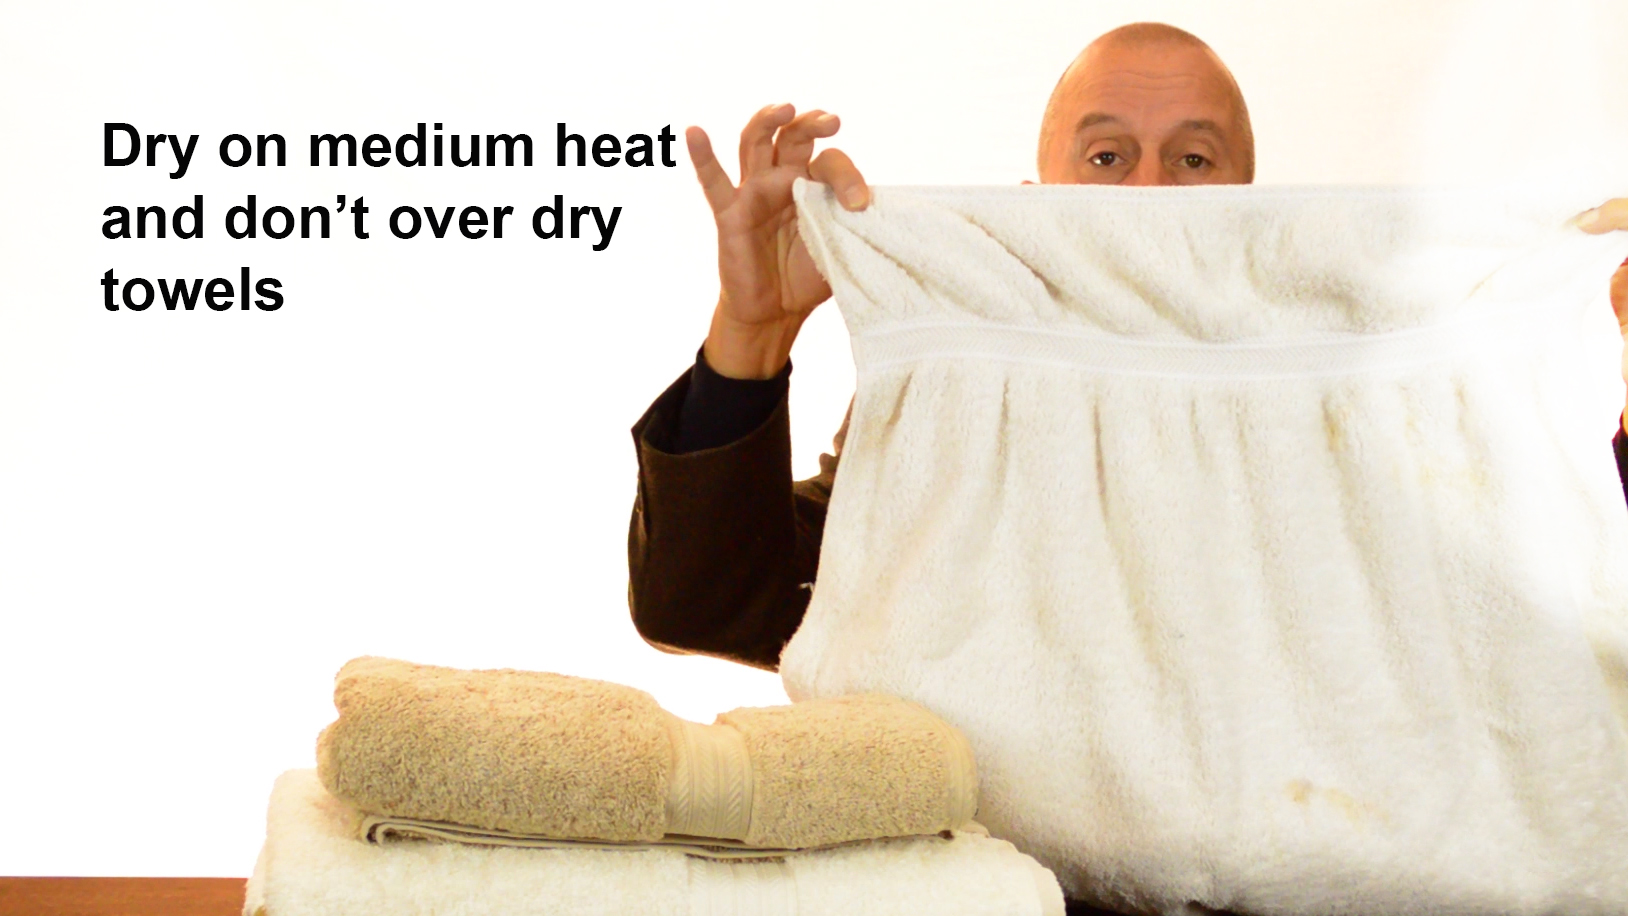 Don't over dry your towels